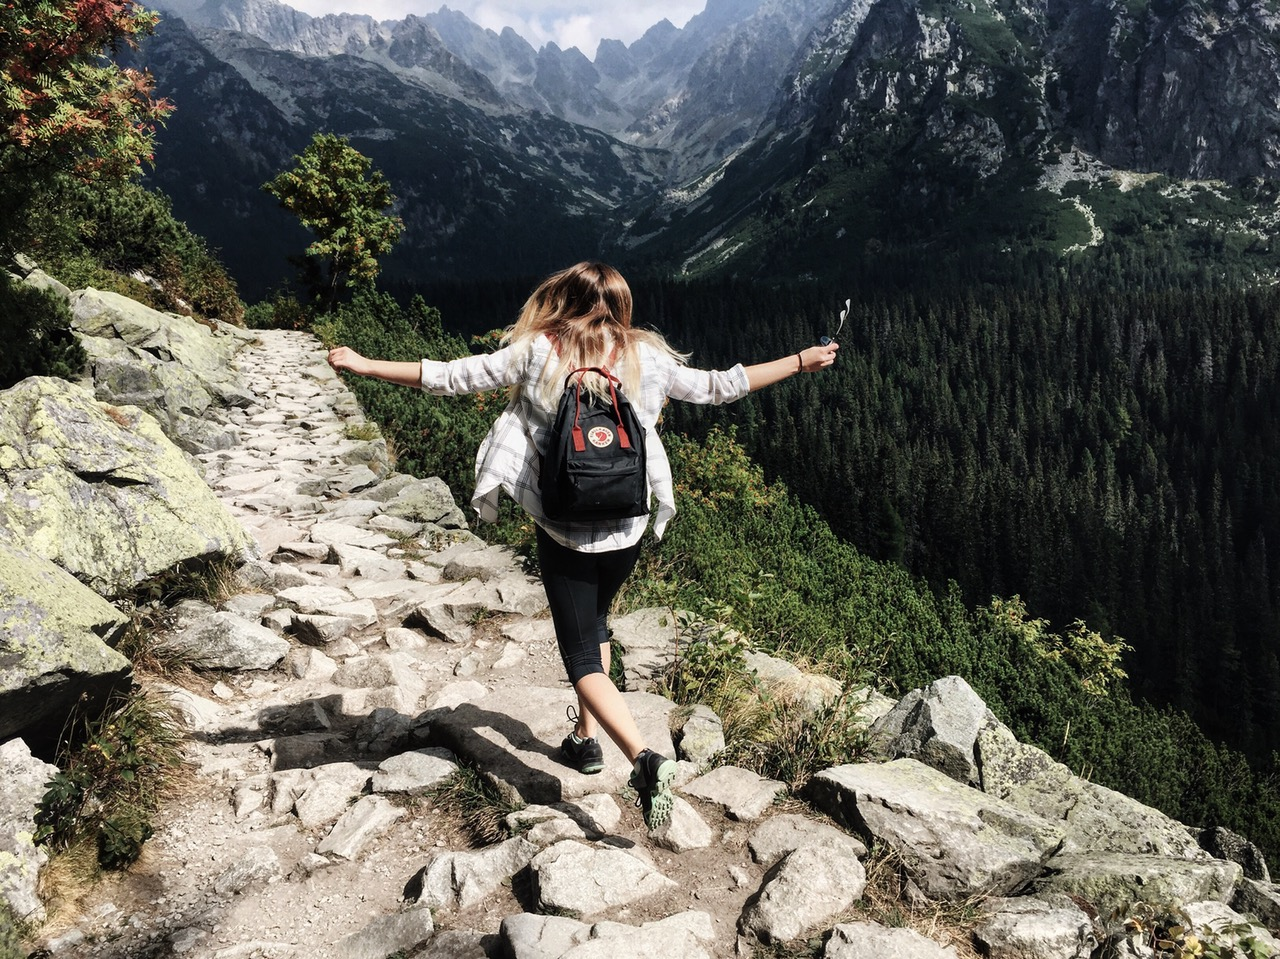 A healthy happy girl hiking